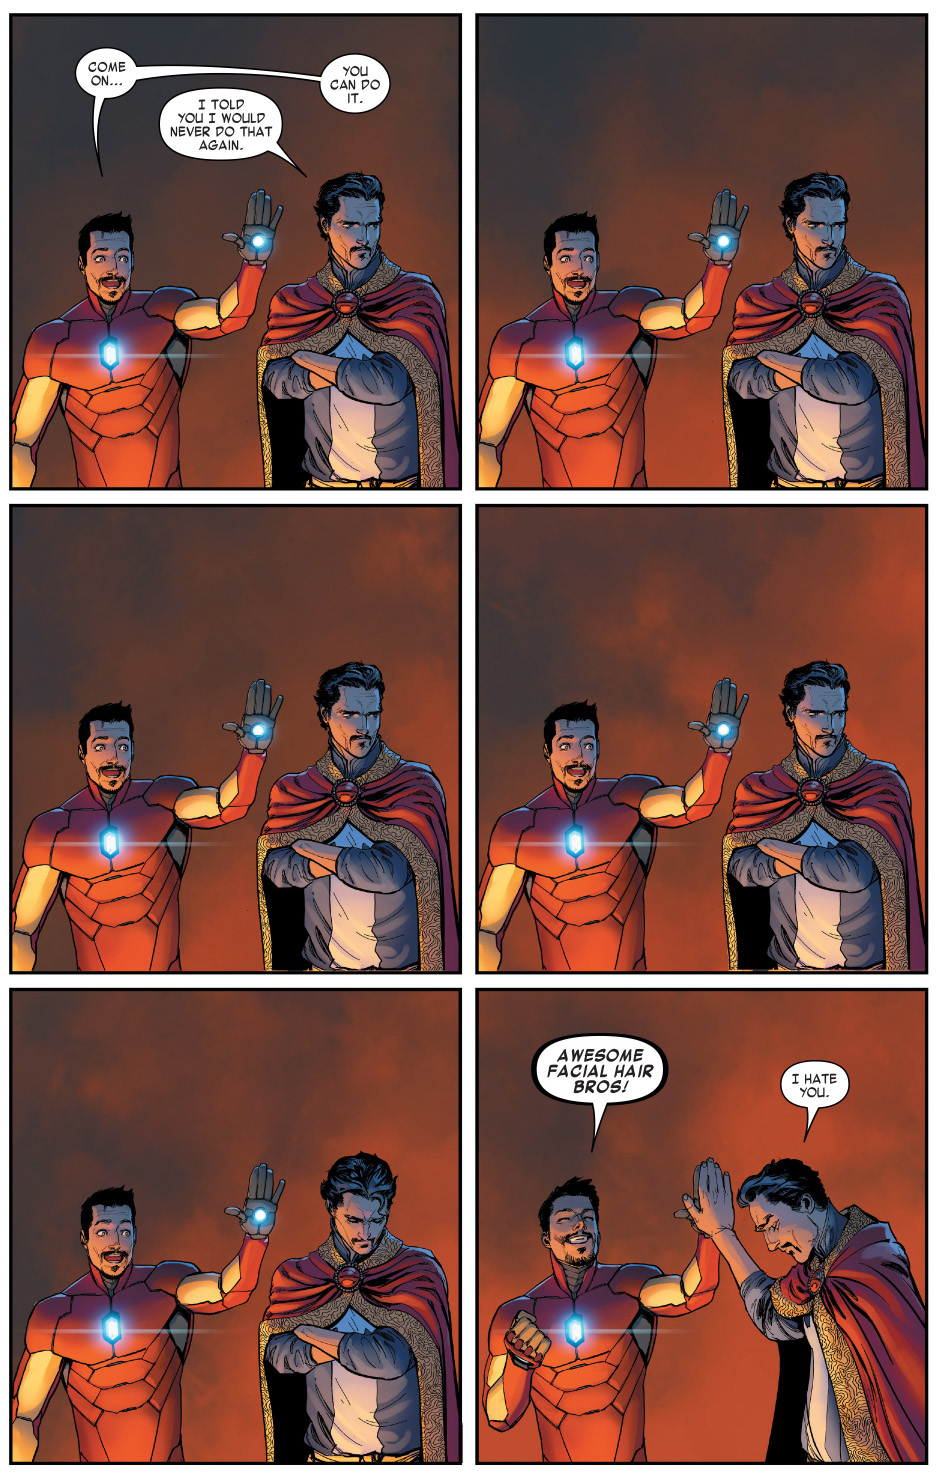 iron-man-and-doctor-strange-high-fives-2